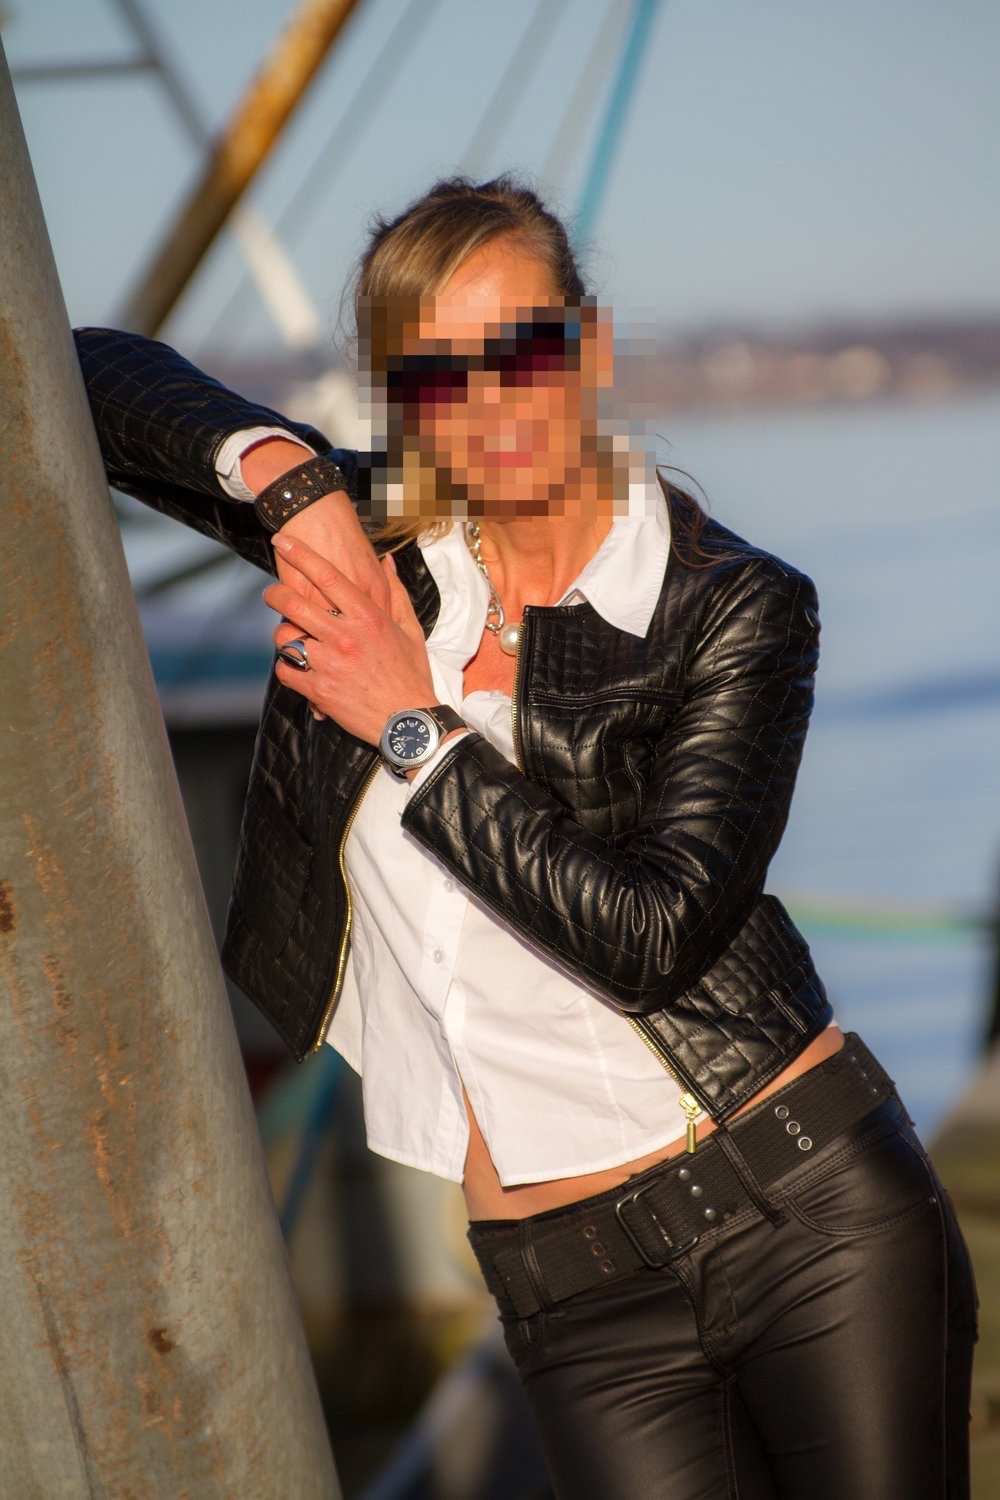 escort-flensburg-lady-madeleine-perfect-date-escort-004-2.jpg